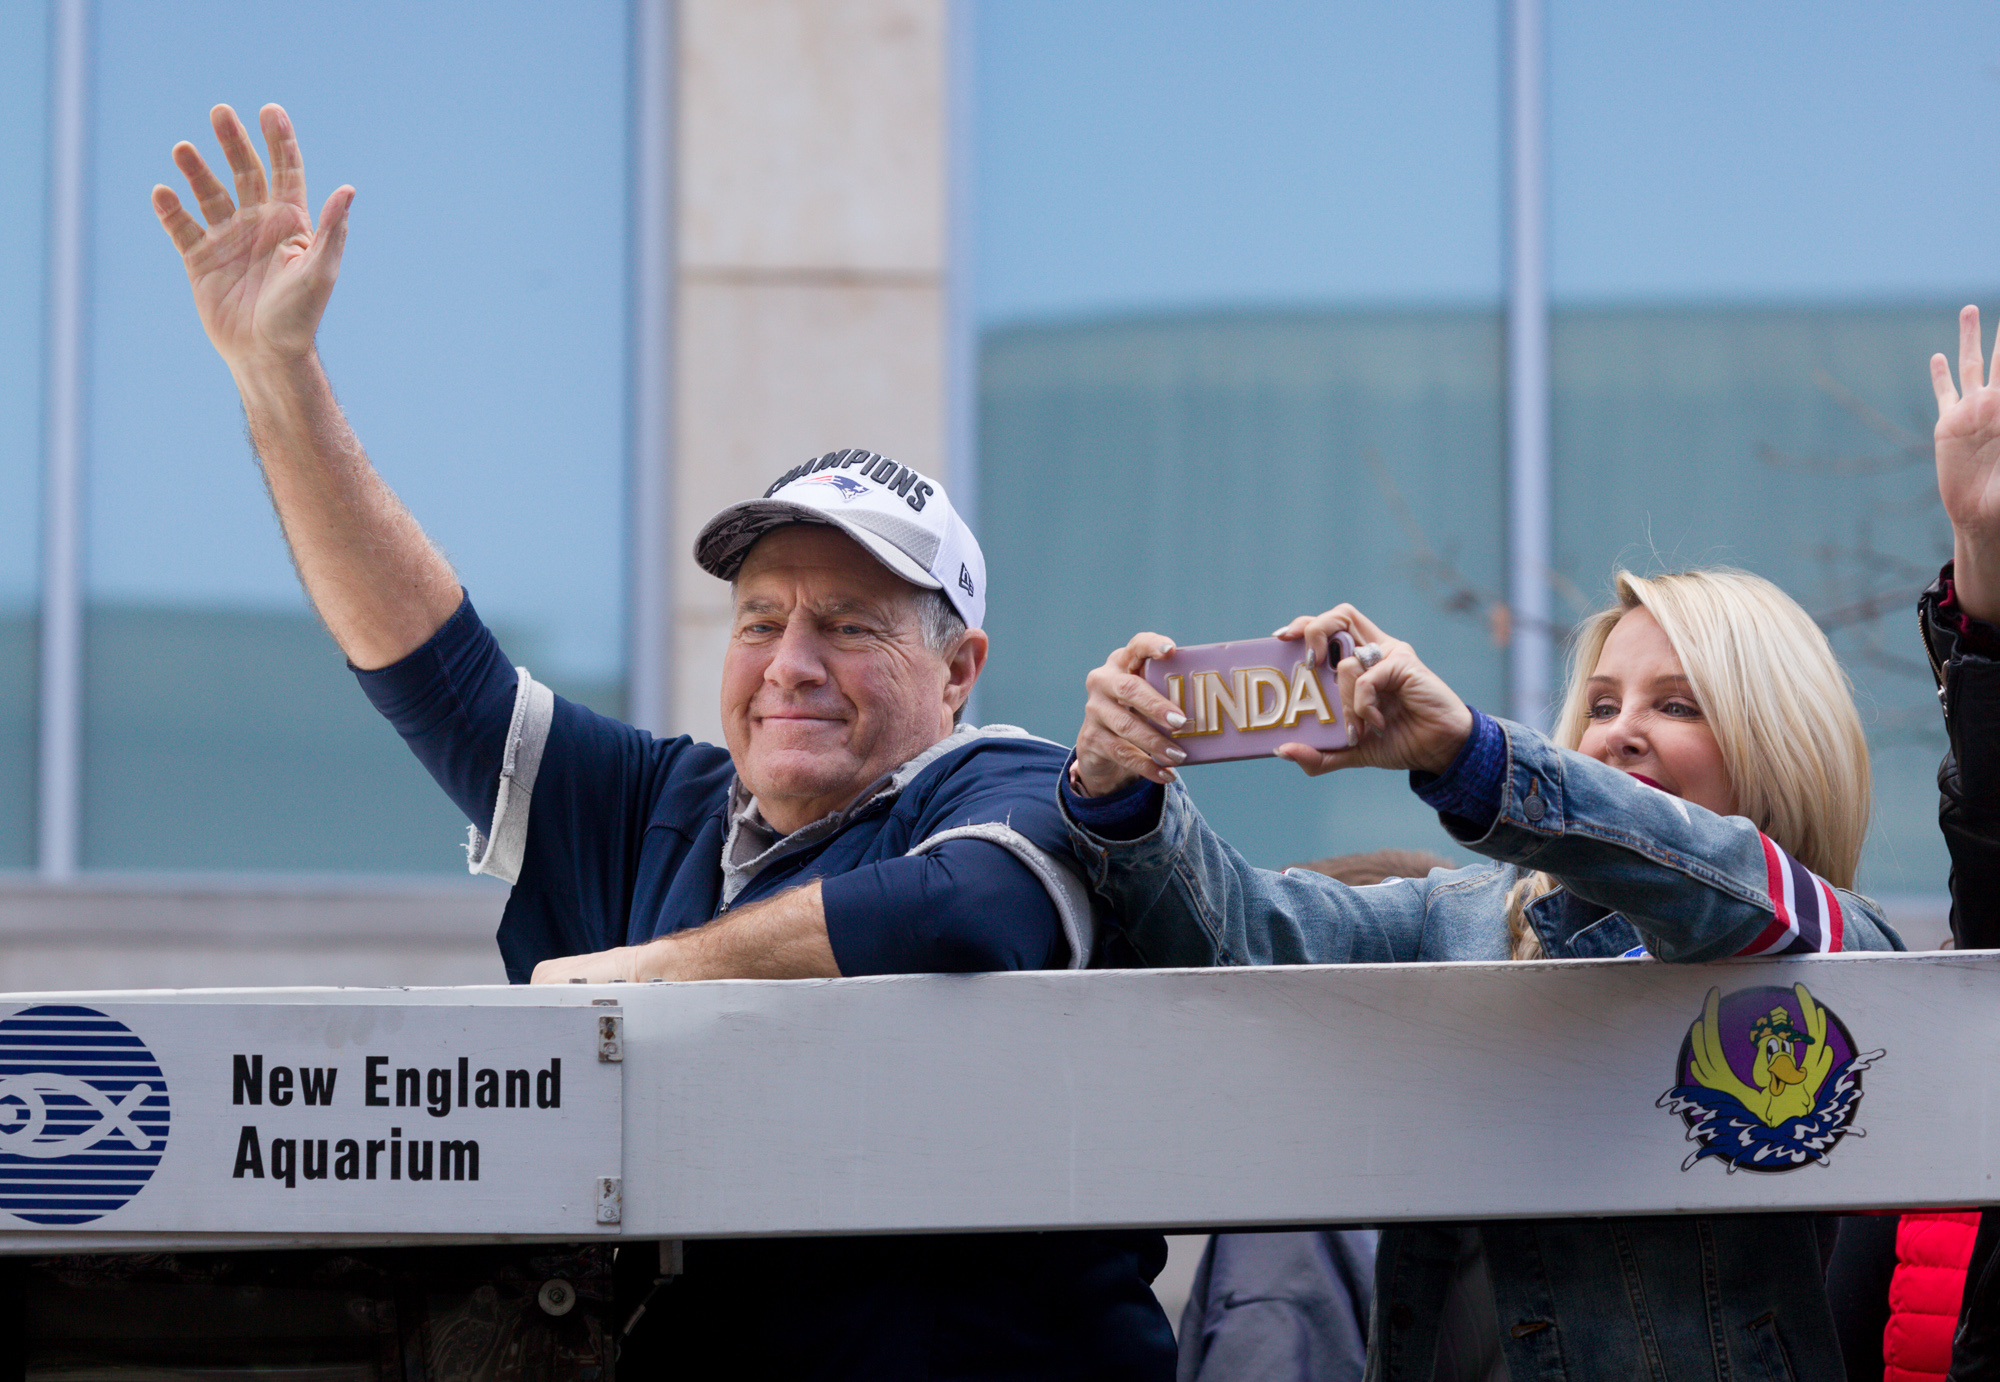 Bill Belichick, and, unless I miss my guess, Linda